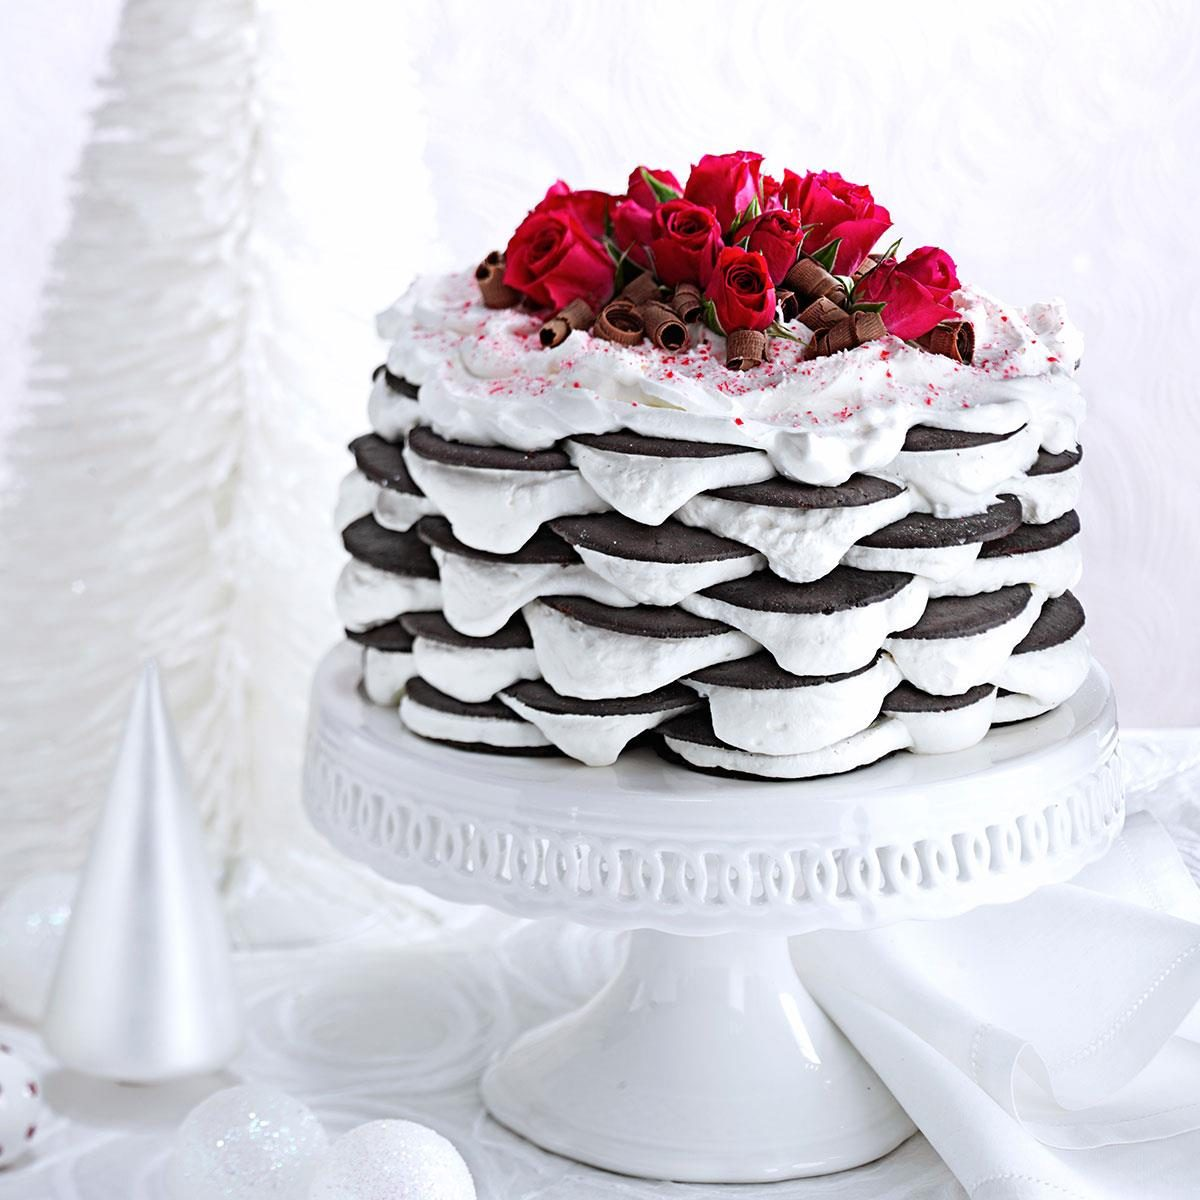 Layered Peppermint Icebox Cake Recipe